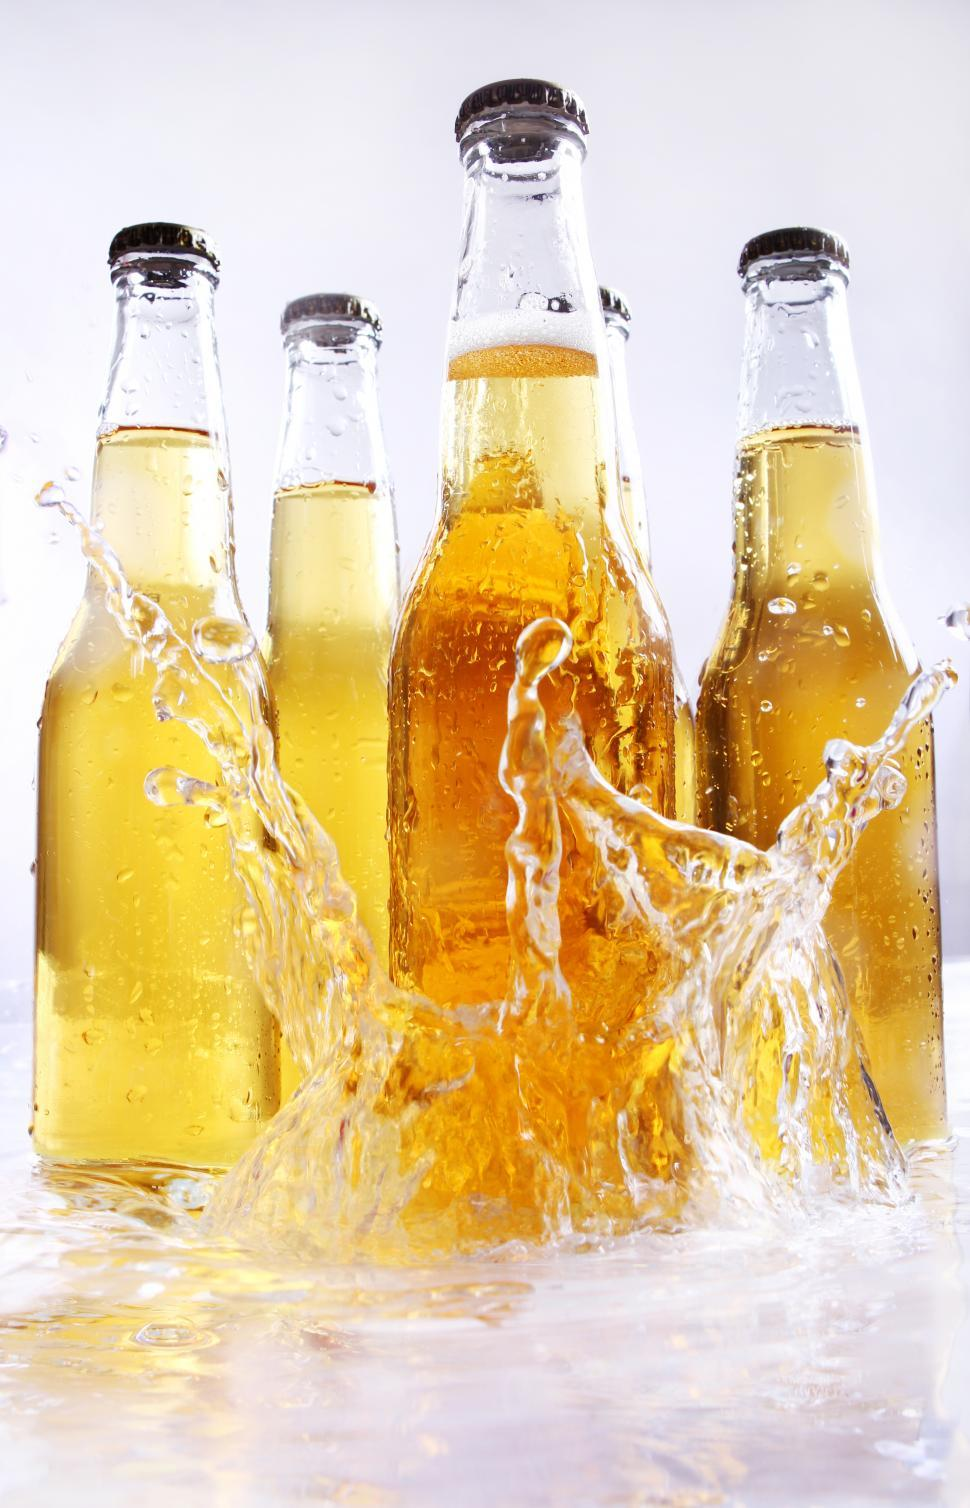 Download Free Stock Photo of Bottles of beer with water splashes